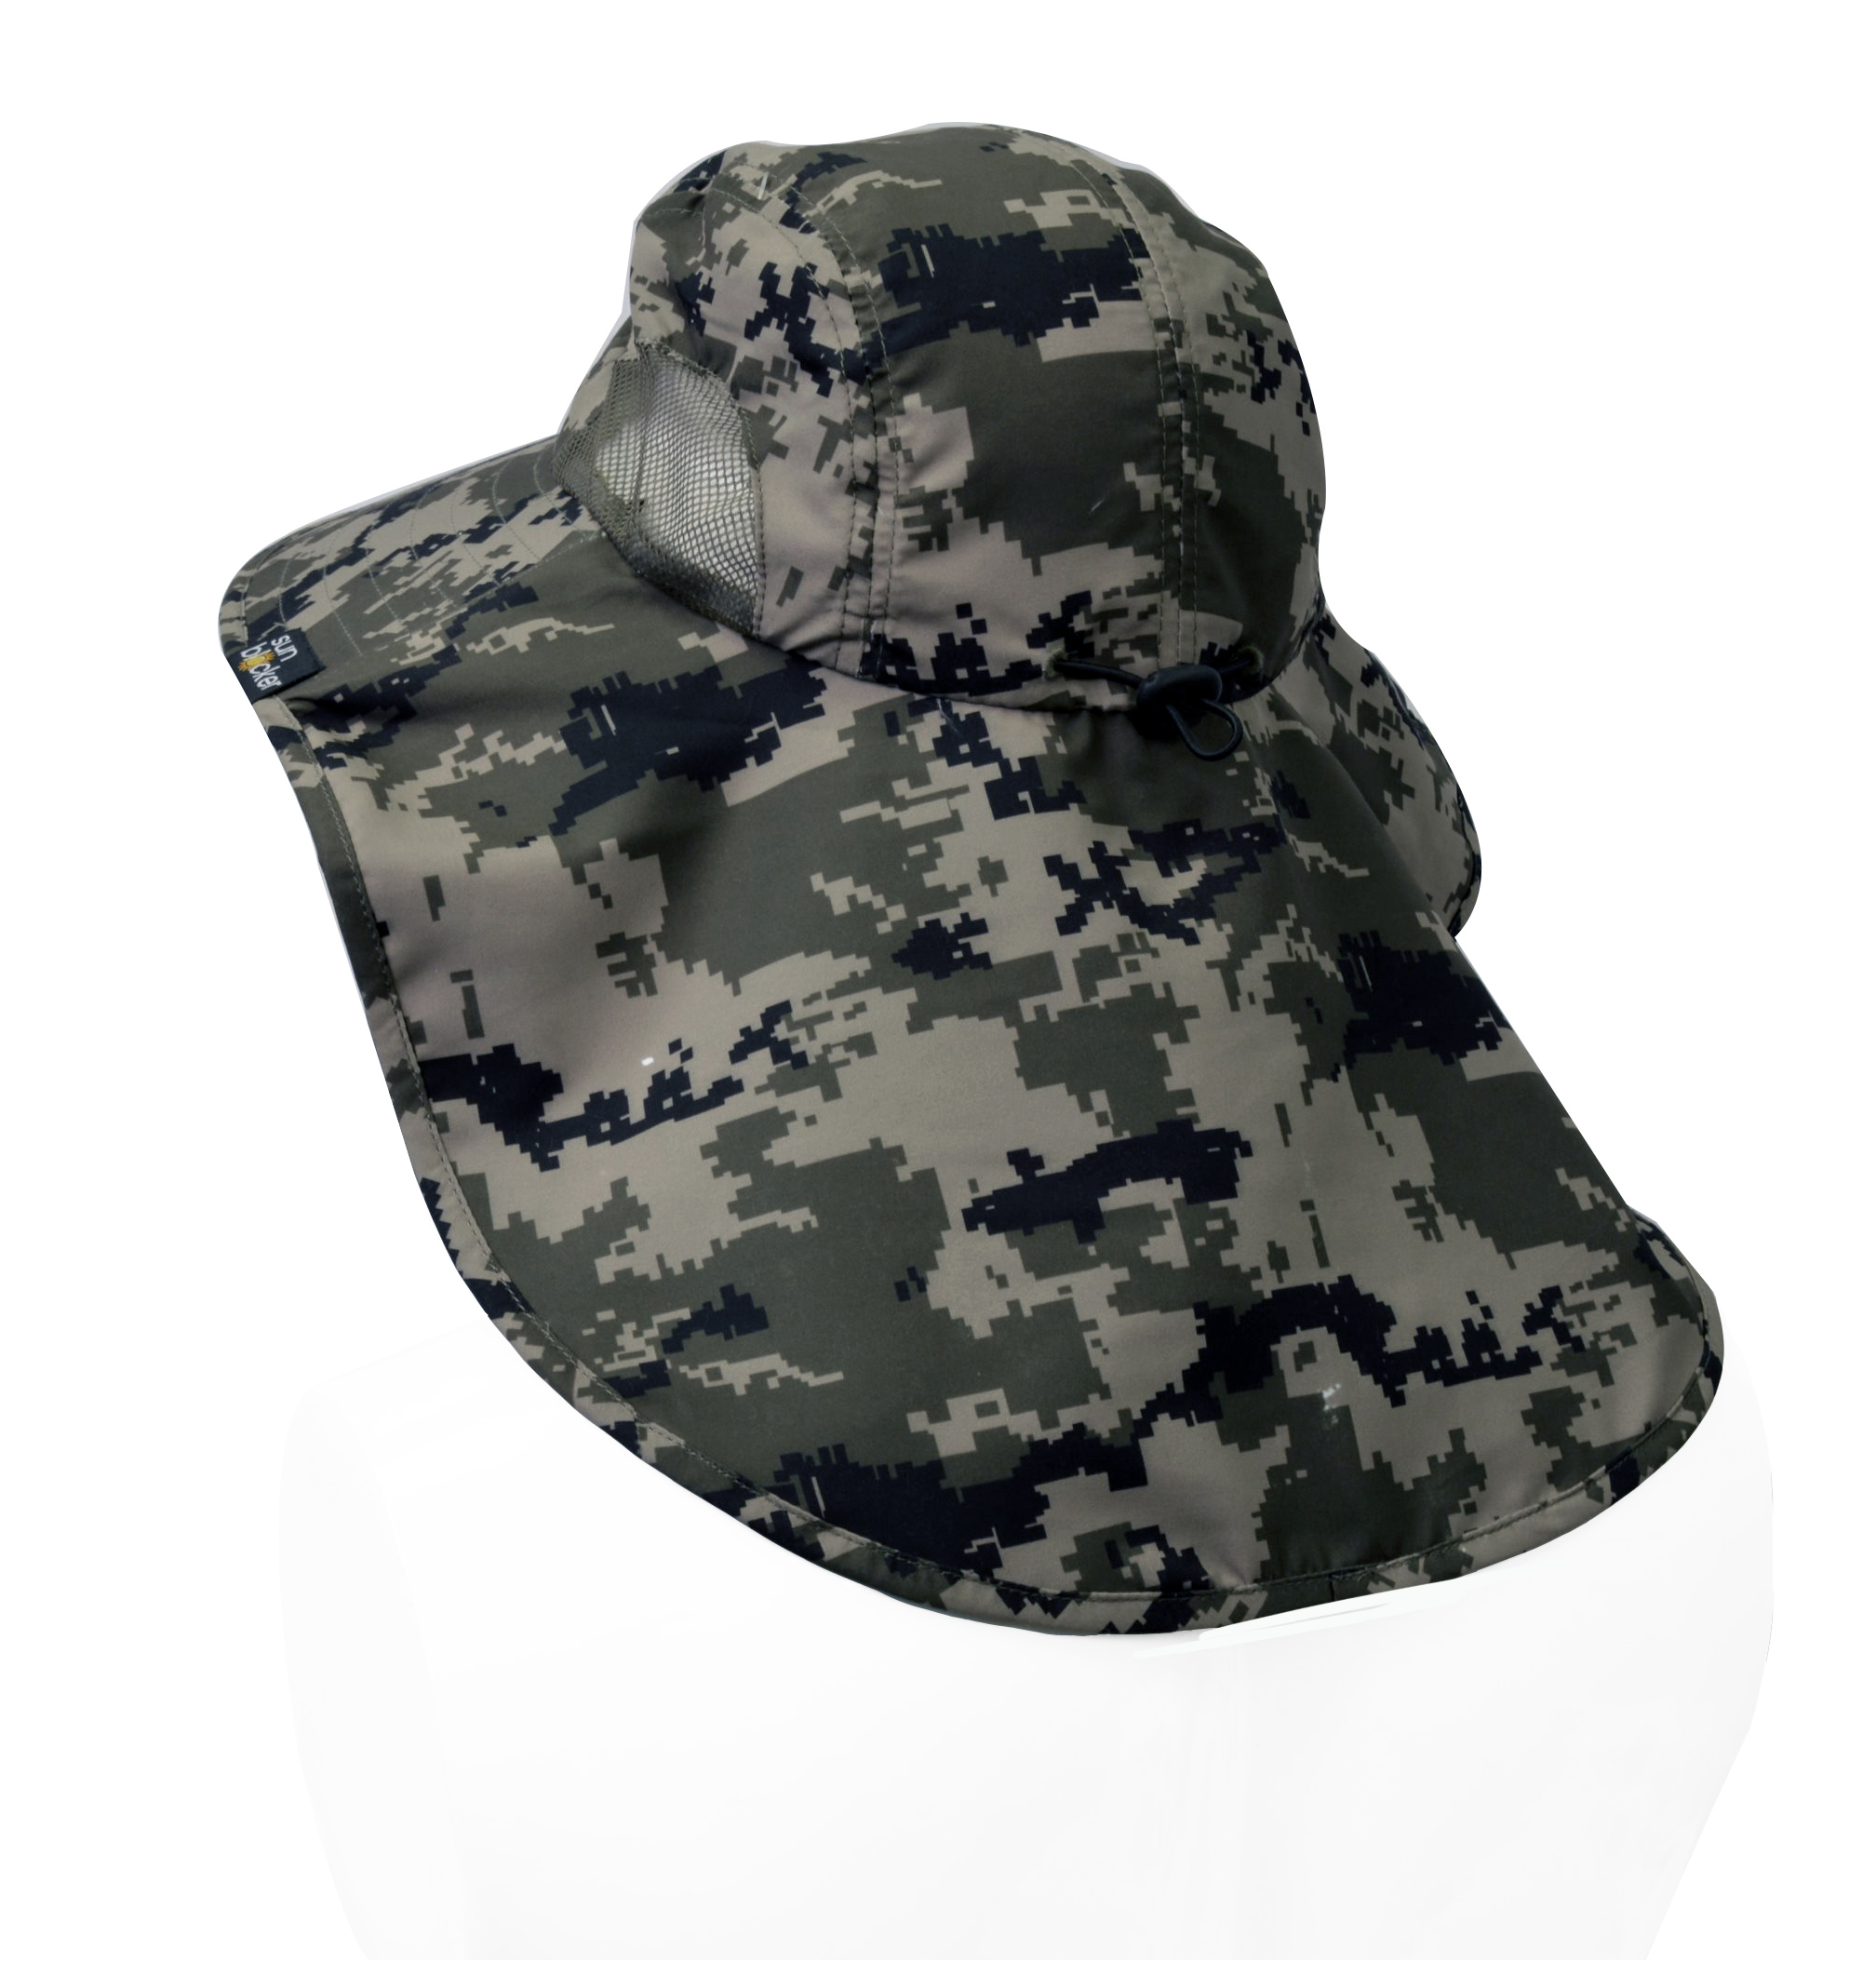 Sun-Hat-Camo-Cap-w-Wide-Brim-Ear-amp-Neck-UV-Protection-for-Fishing-Camping-Hiking thumbnail 10